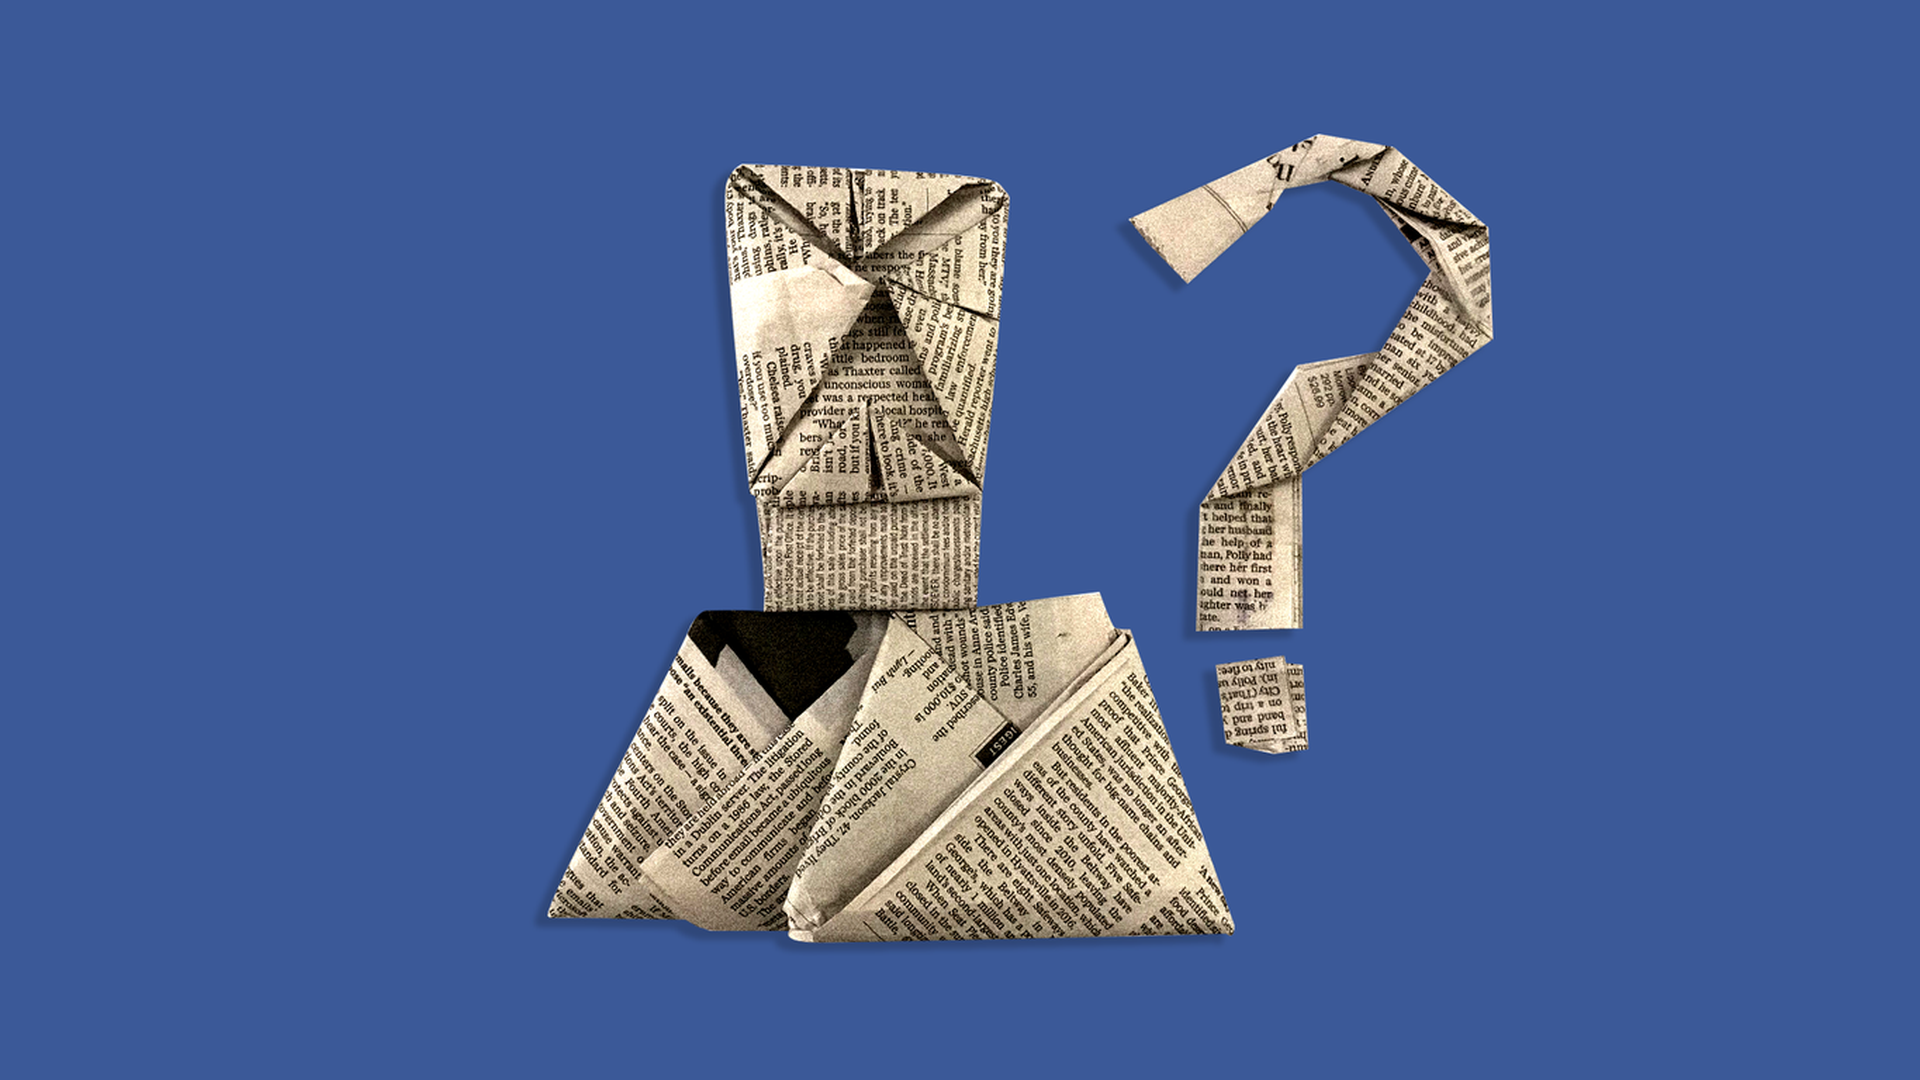 Illustration of folded up newspapers against a Facebook-blue-colored background